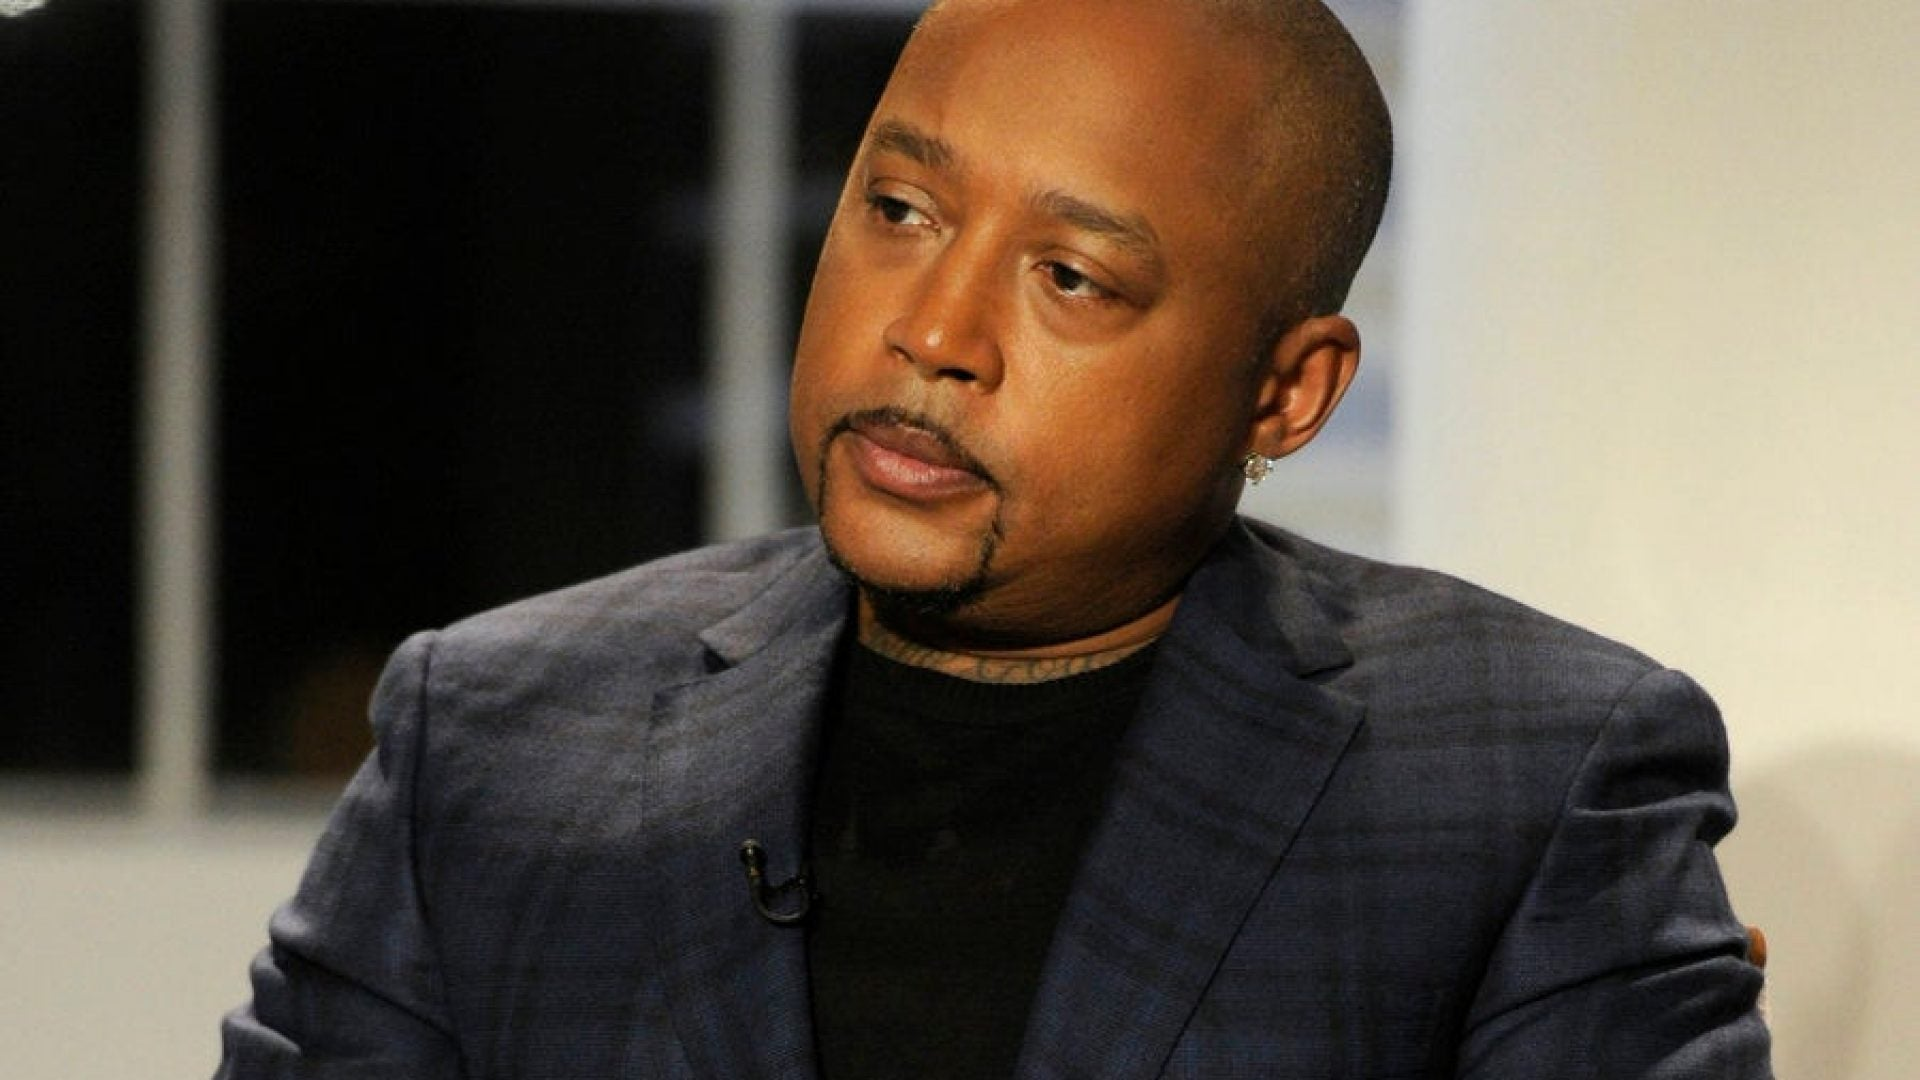 'Shark Tank's' Daymond John Denies He Inflated Prices Of N95 Masks Amid Pandemic